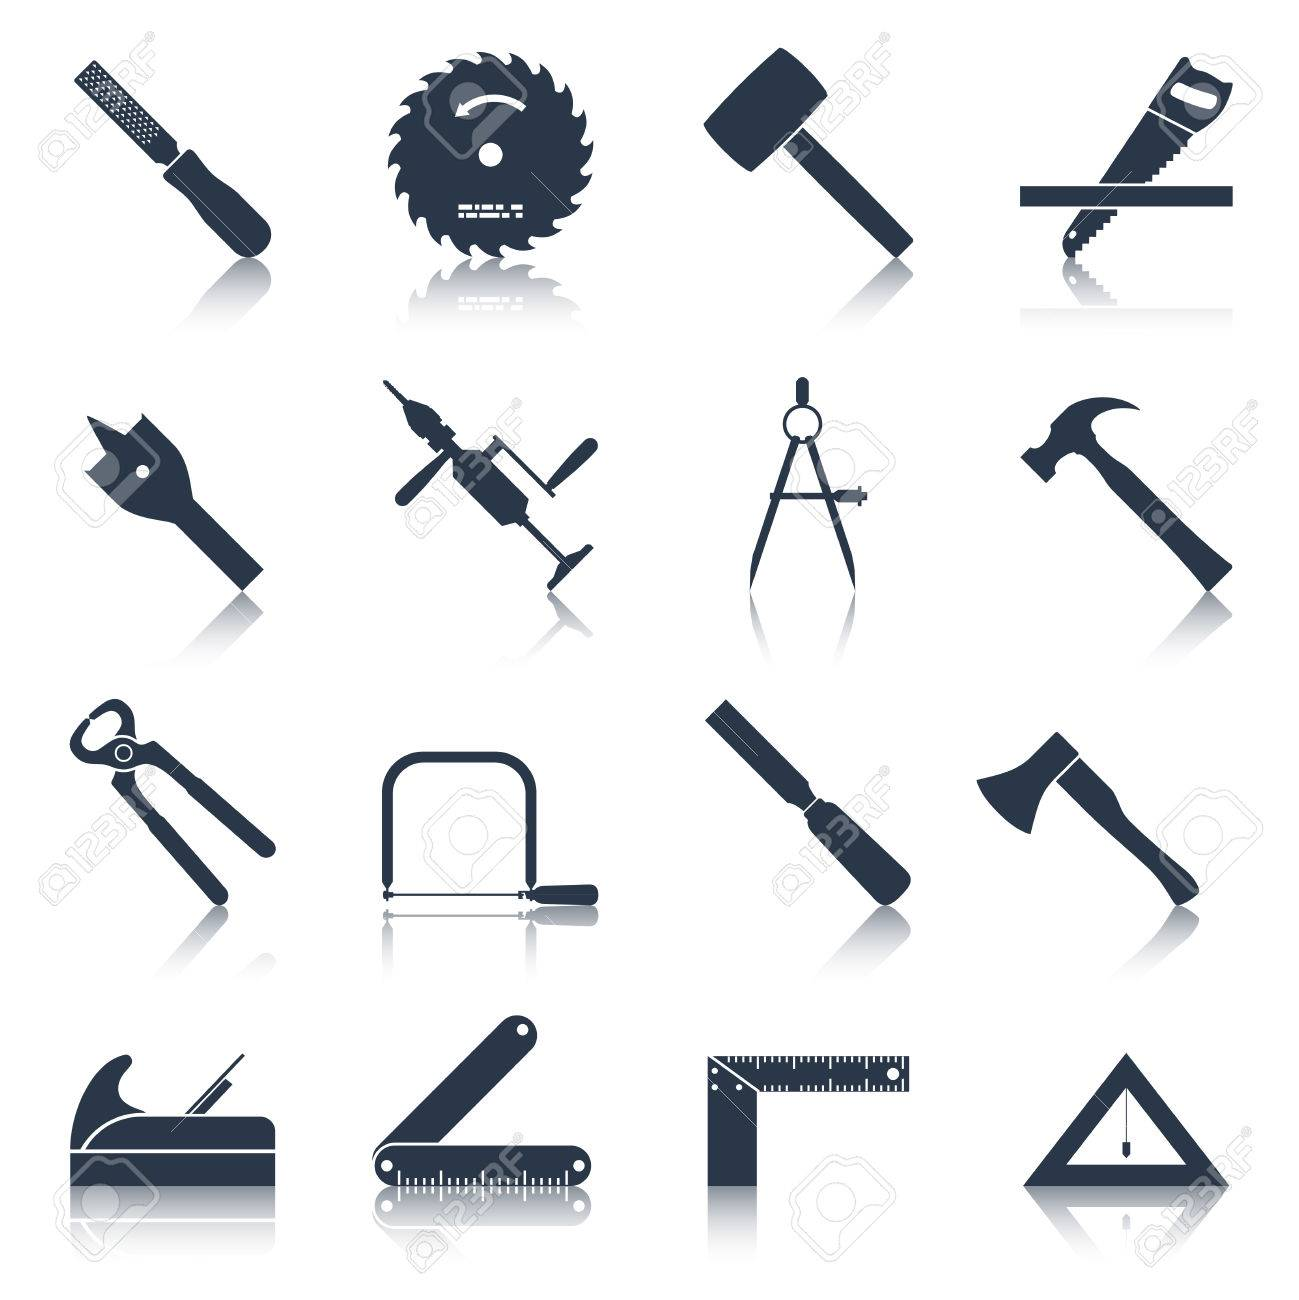 Carpentry Wood Work Tools And Equipment Black Icons Set Isolated